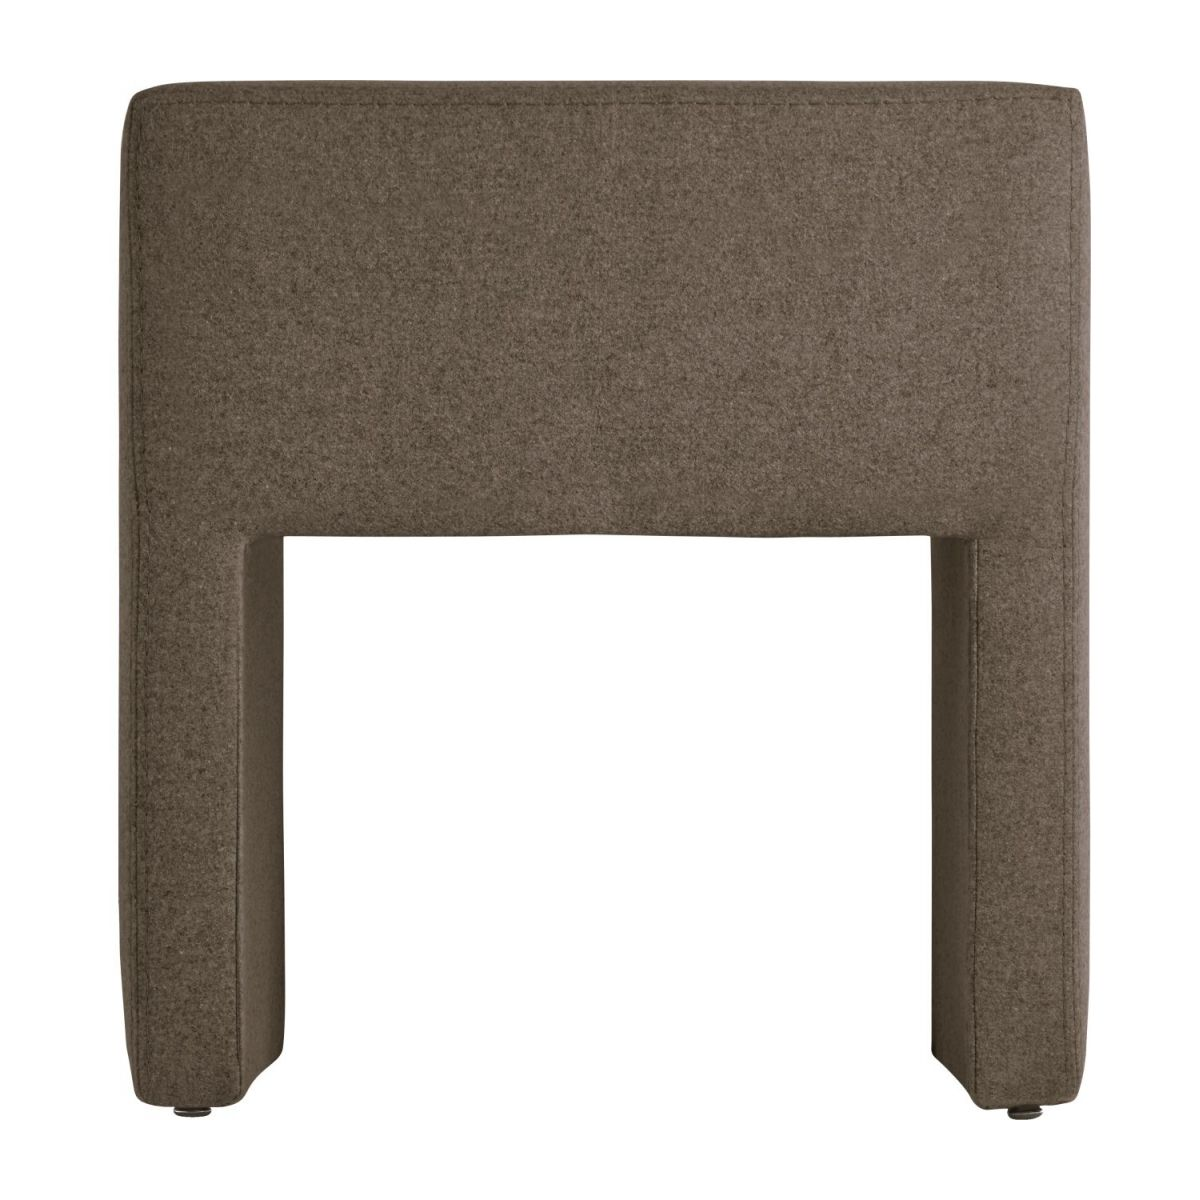 Table de chevet en feutrine - Beige n°6